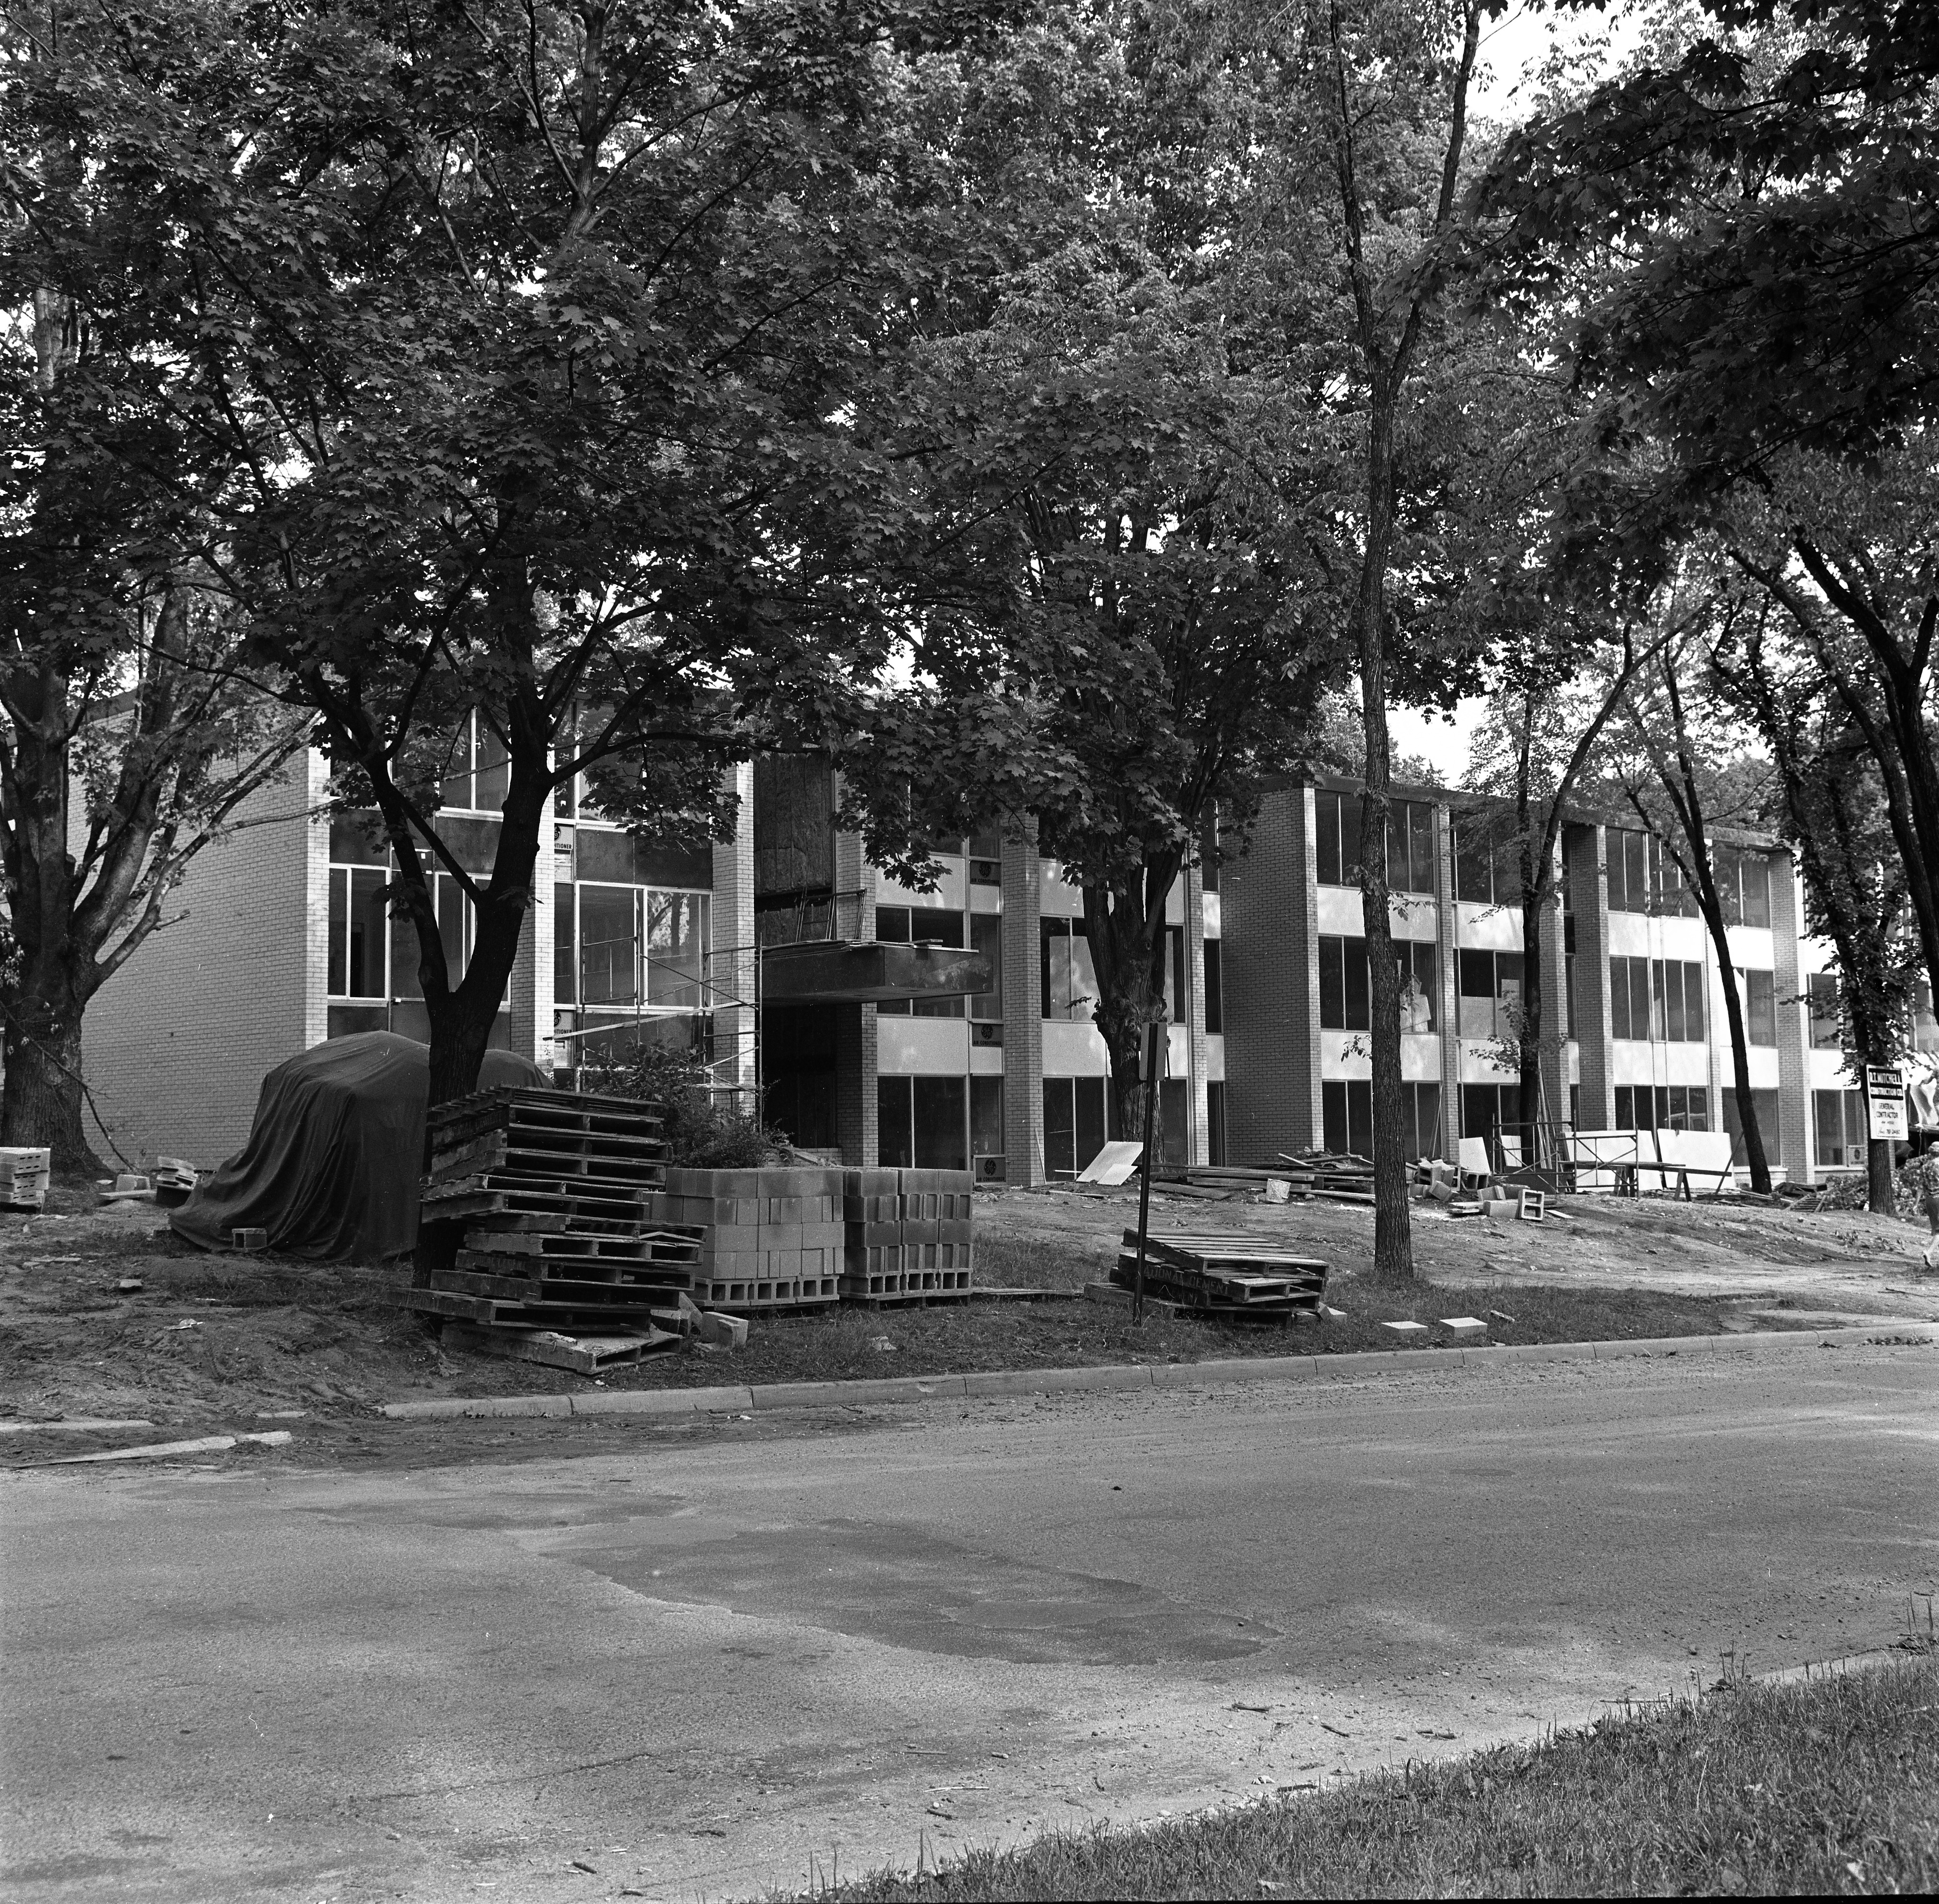 S. Forest Apartment Construction, July 19, 1966 image